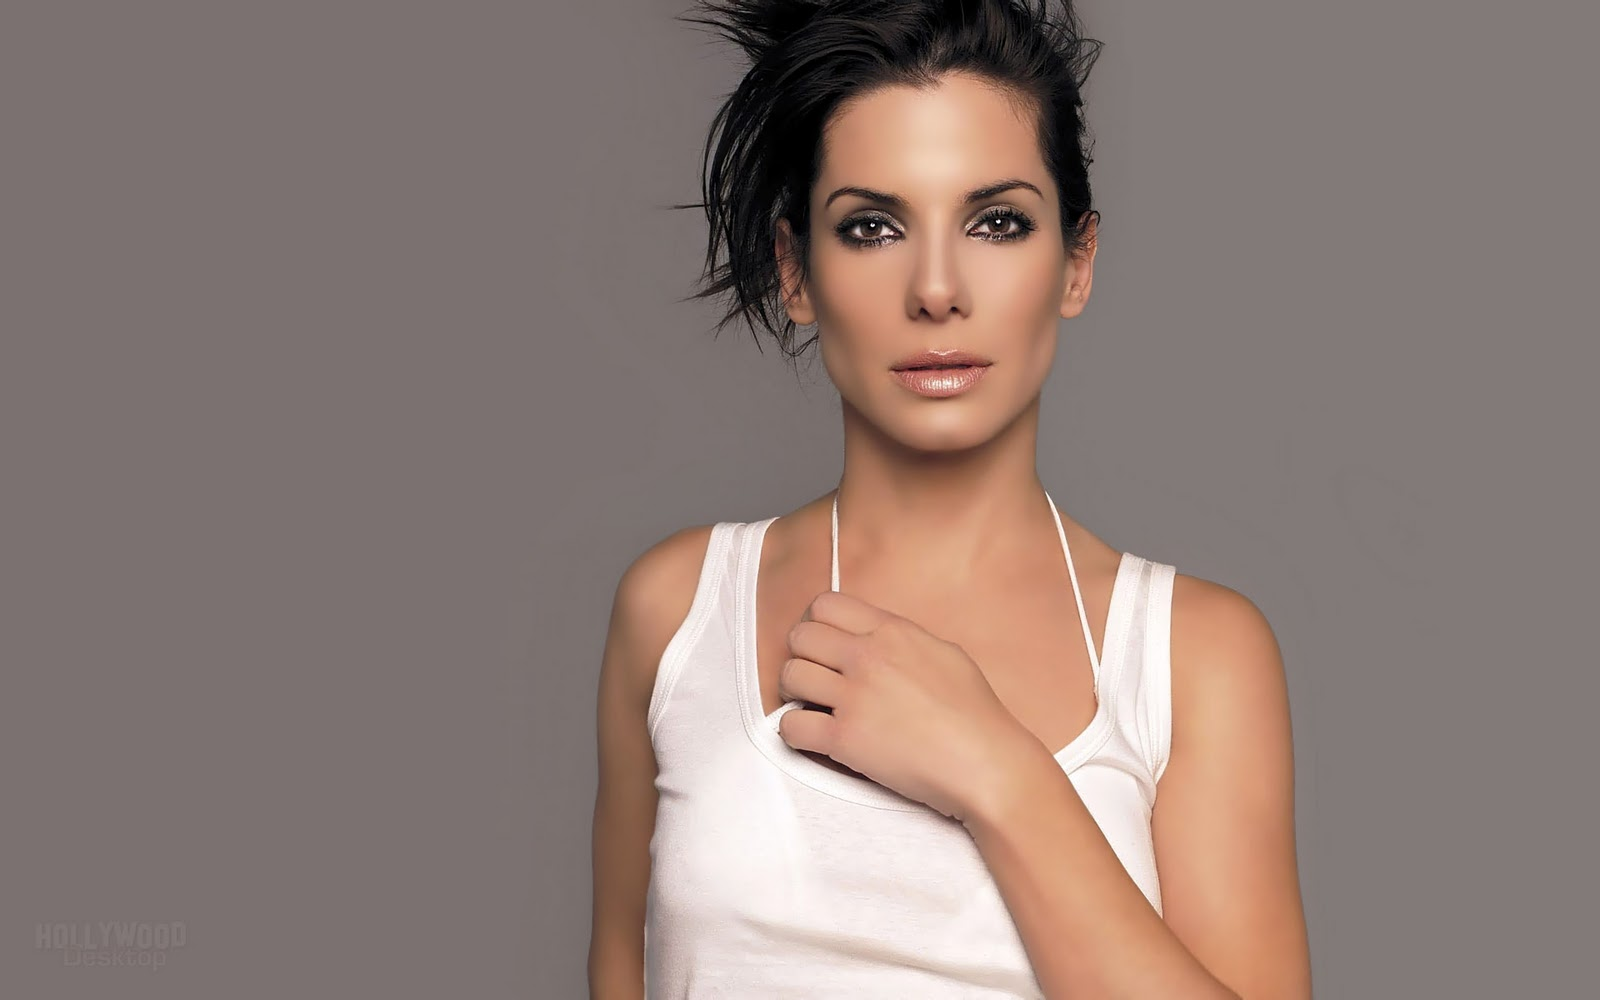 Sandra Bullock Hot Actress Wallpapers